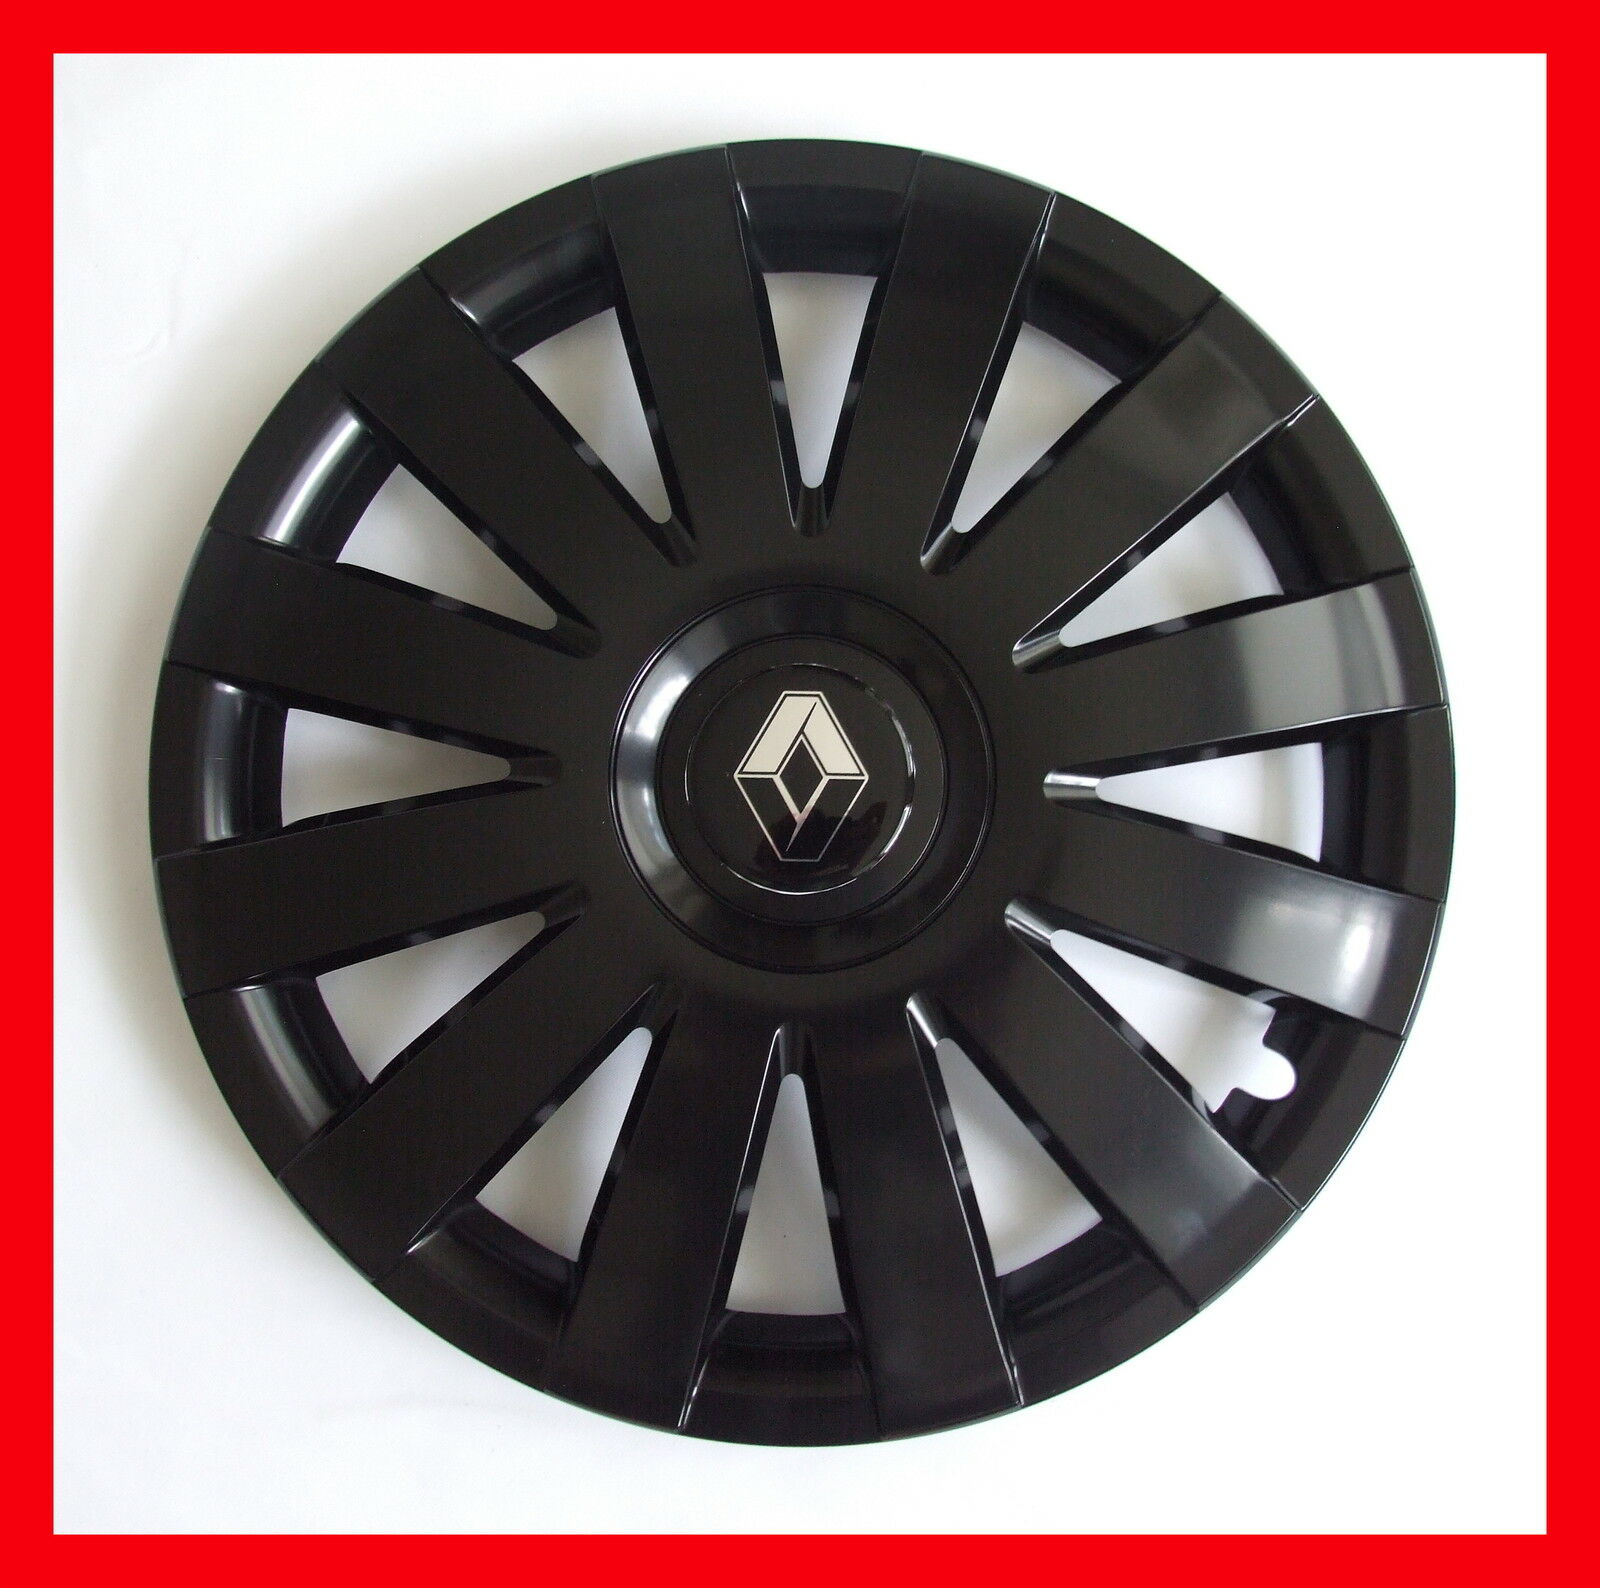 13 renault clio twingo wheel trims covers hub caps set of. Black Bedroom Furniture Sets. Home Design Ideas